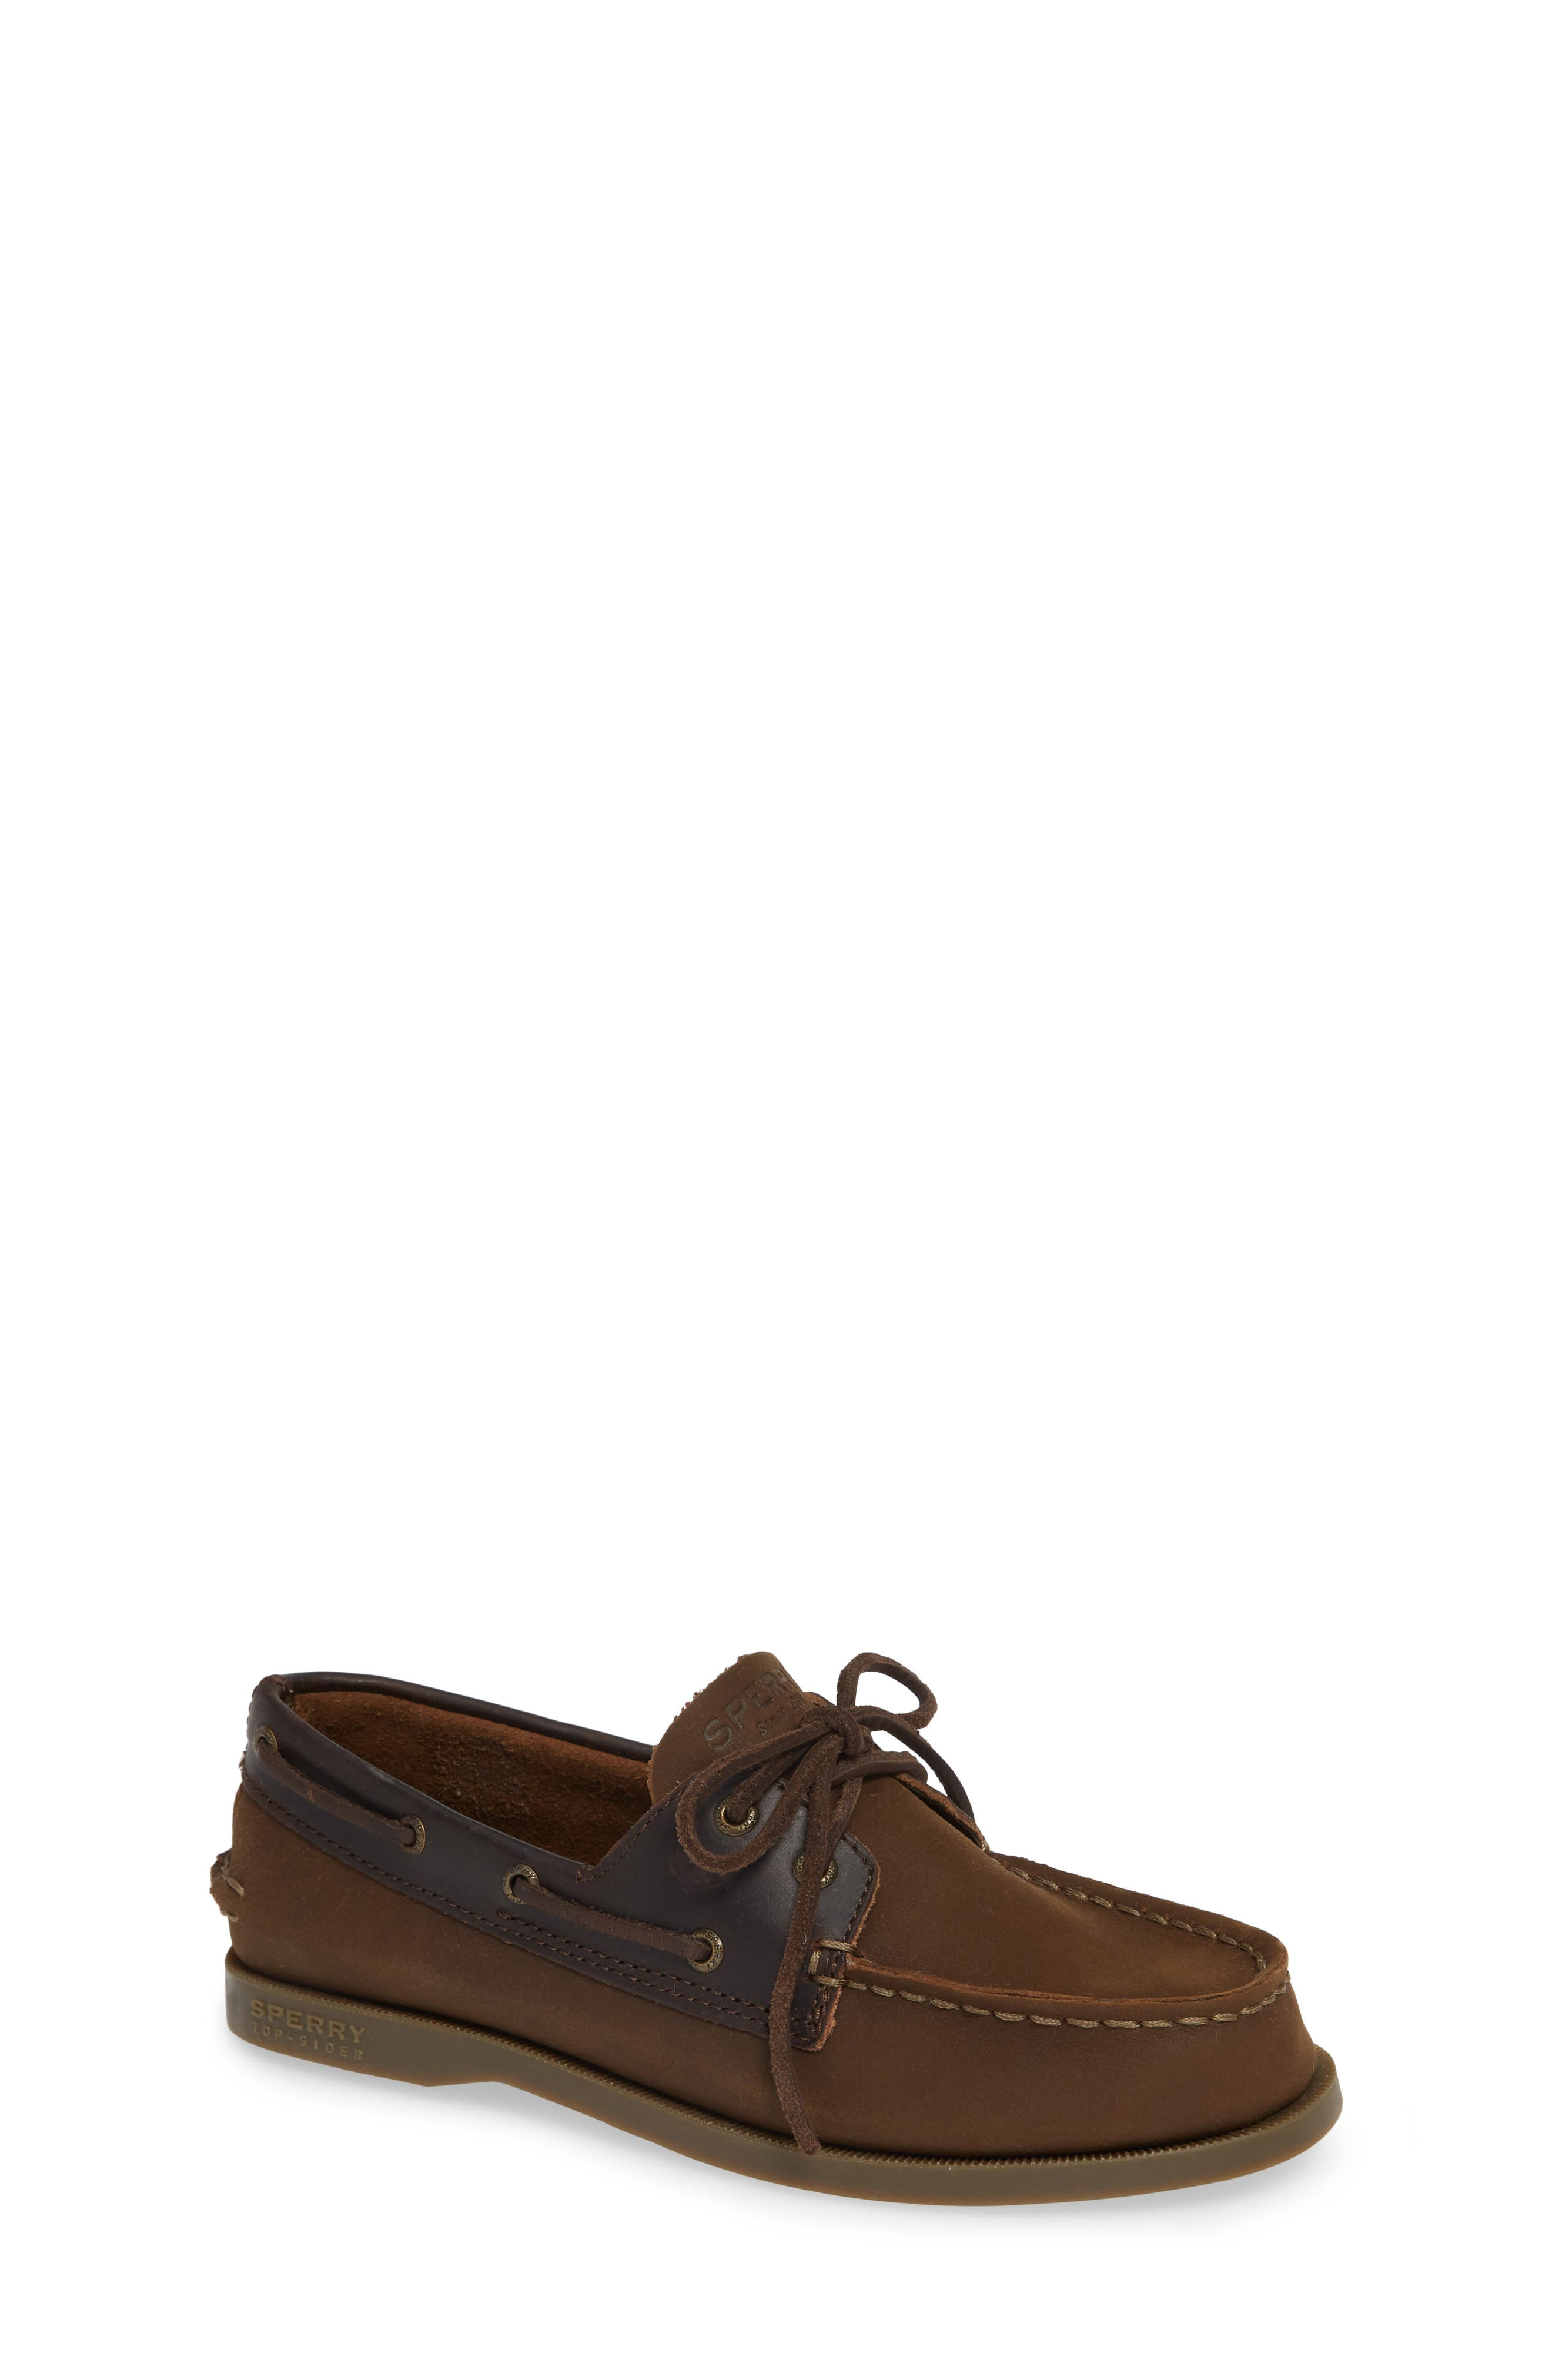 SPERRY KIDS, 'Authentic Original' Boat Shoe, Main thumbnail 1, color, BROWN BUCK LEATHER